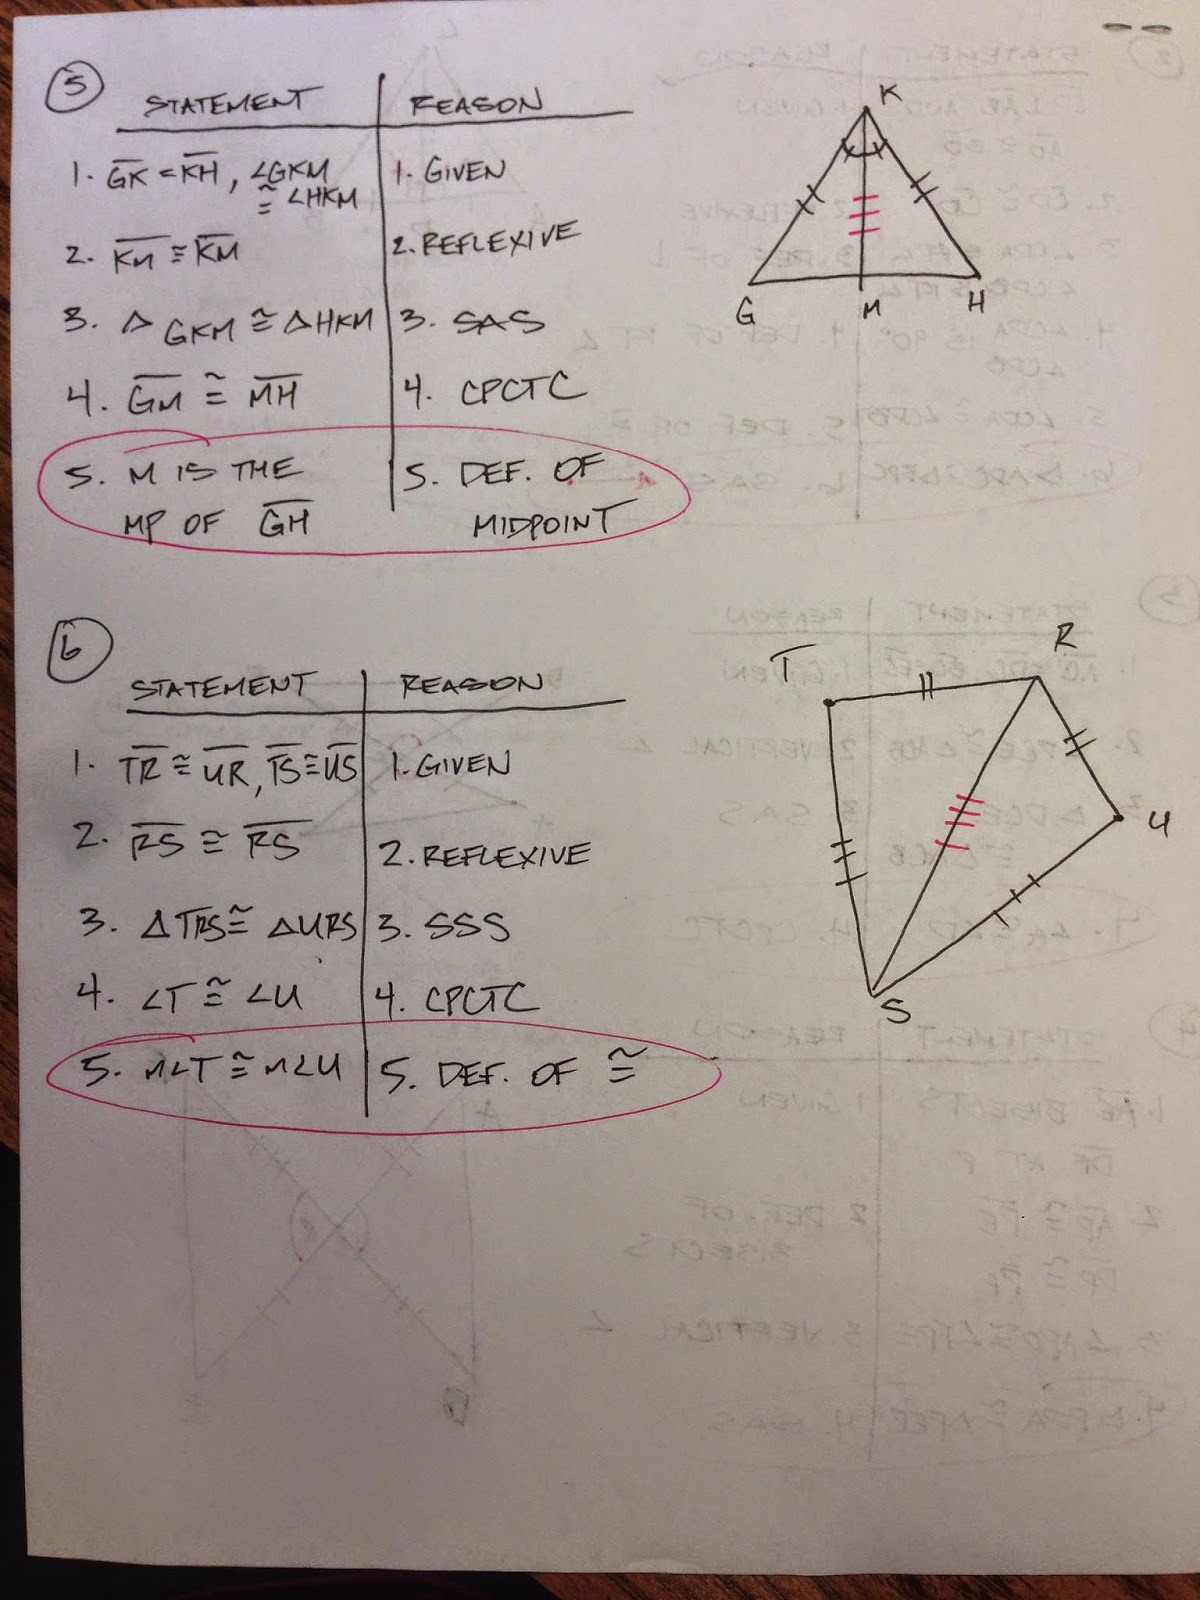 Proving Triangles Congruent Worksheet Answers Yooob